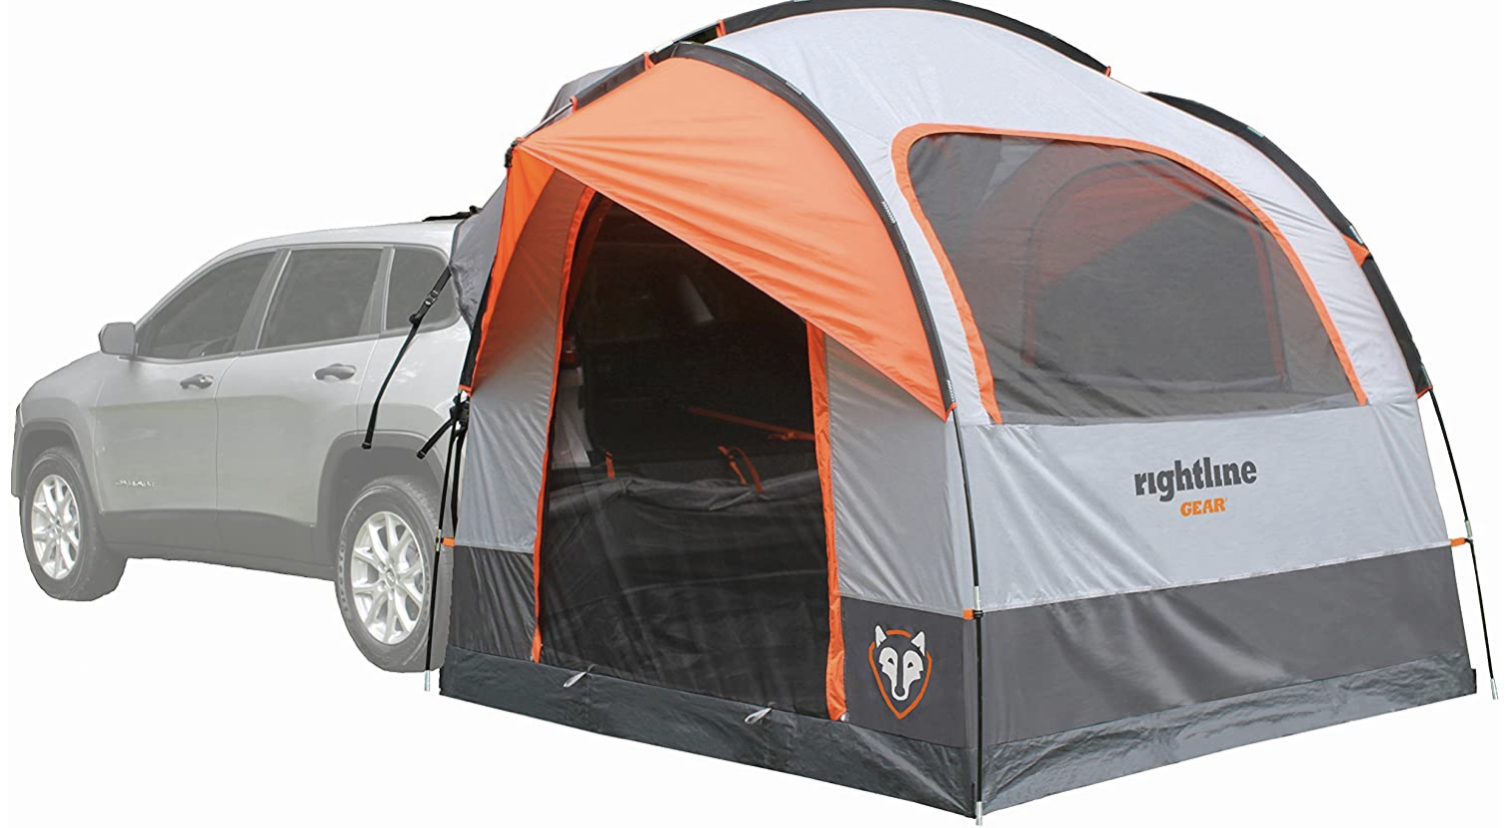 The Complete Guide to Tents That Attach to Suvs 2